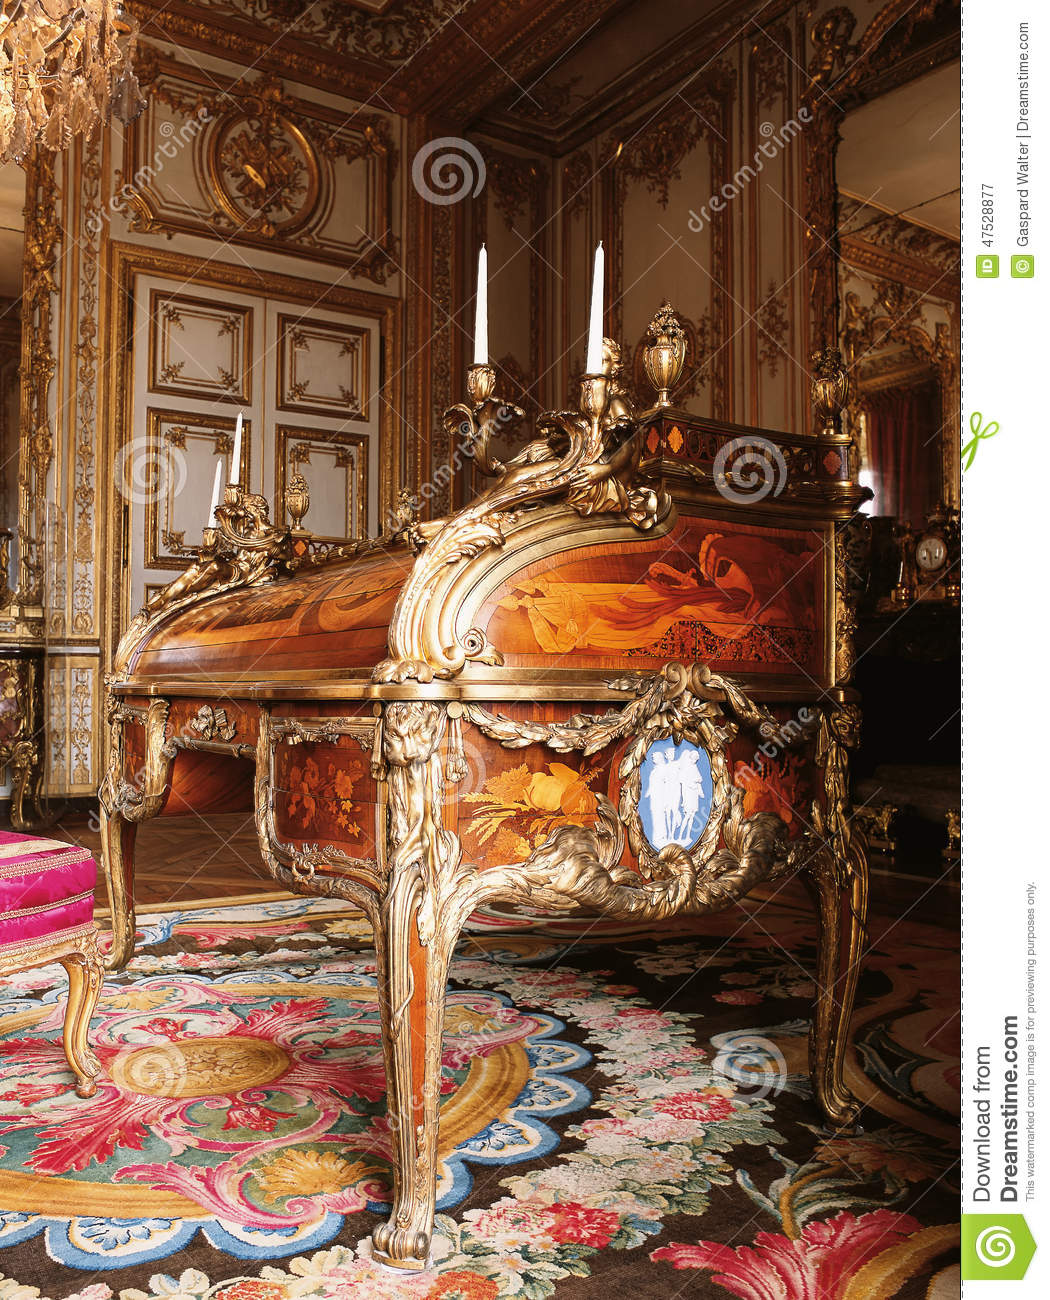 meubles au palais de versailles france photographie ditorial image 47528877. Black Bedroom Furniture Sets. Home Design Ideas